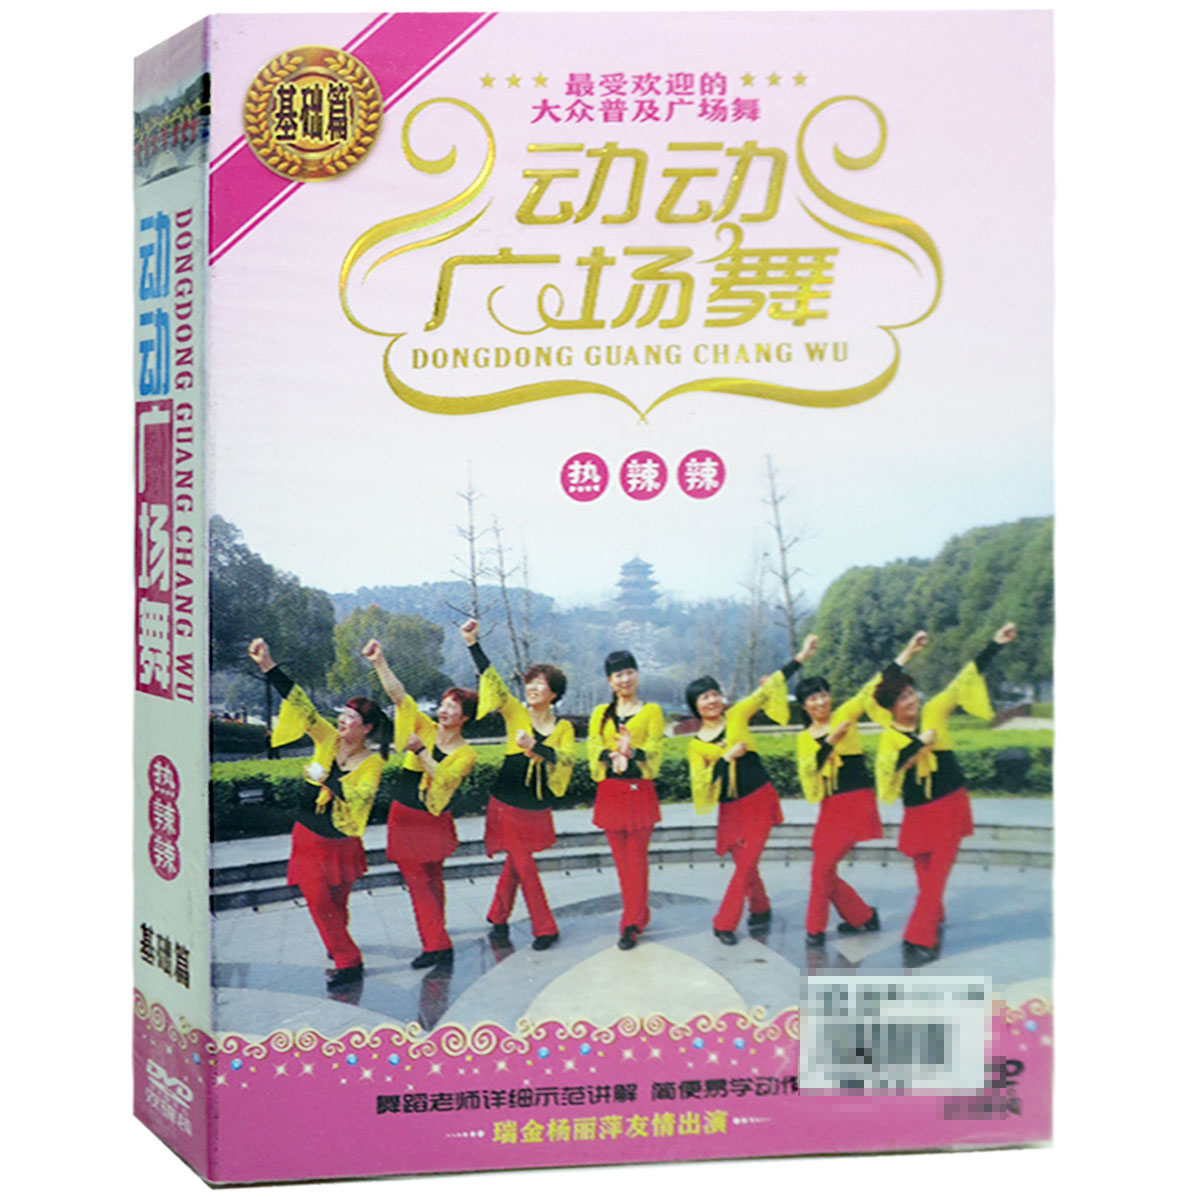 Cold wind genuine dodo square dance basics 2dvd china i taste you are my teana